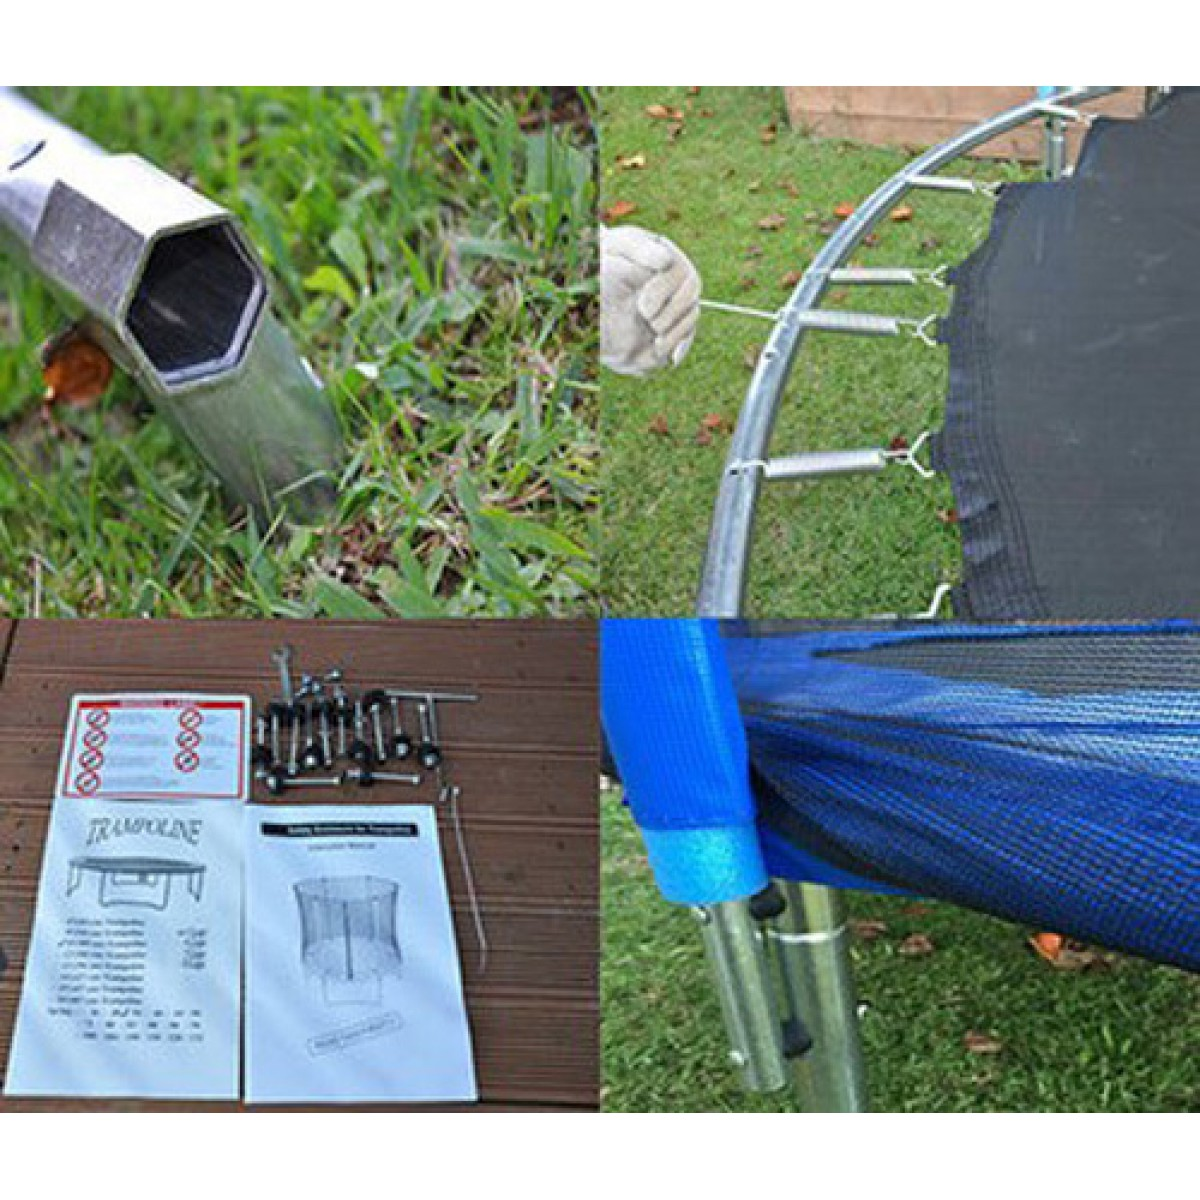 TrampKing 10FT Trampoline With Safety Net And Ladder